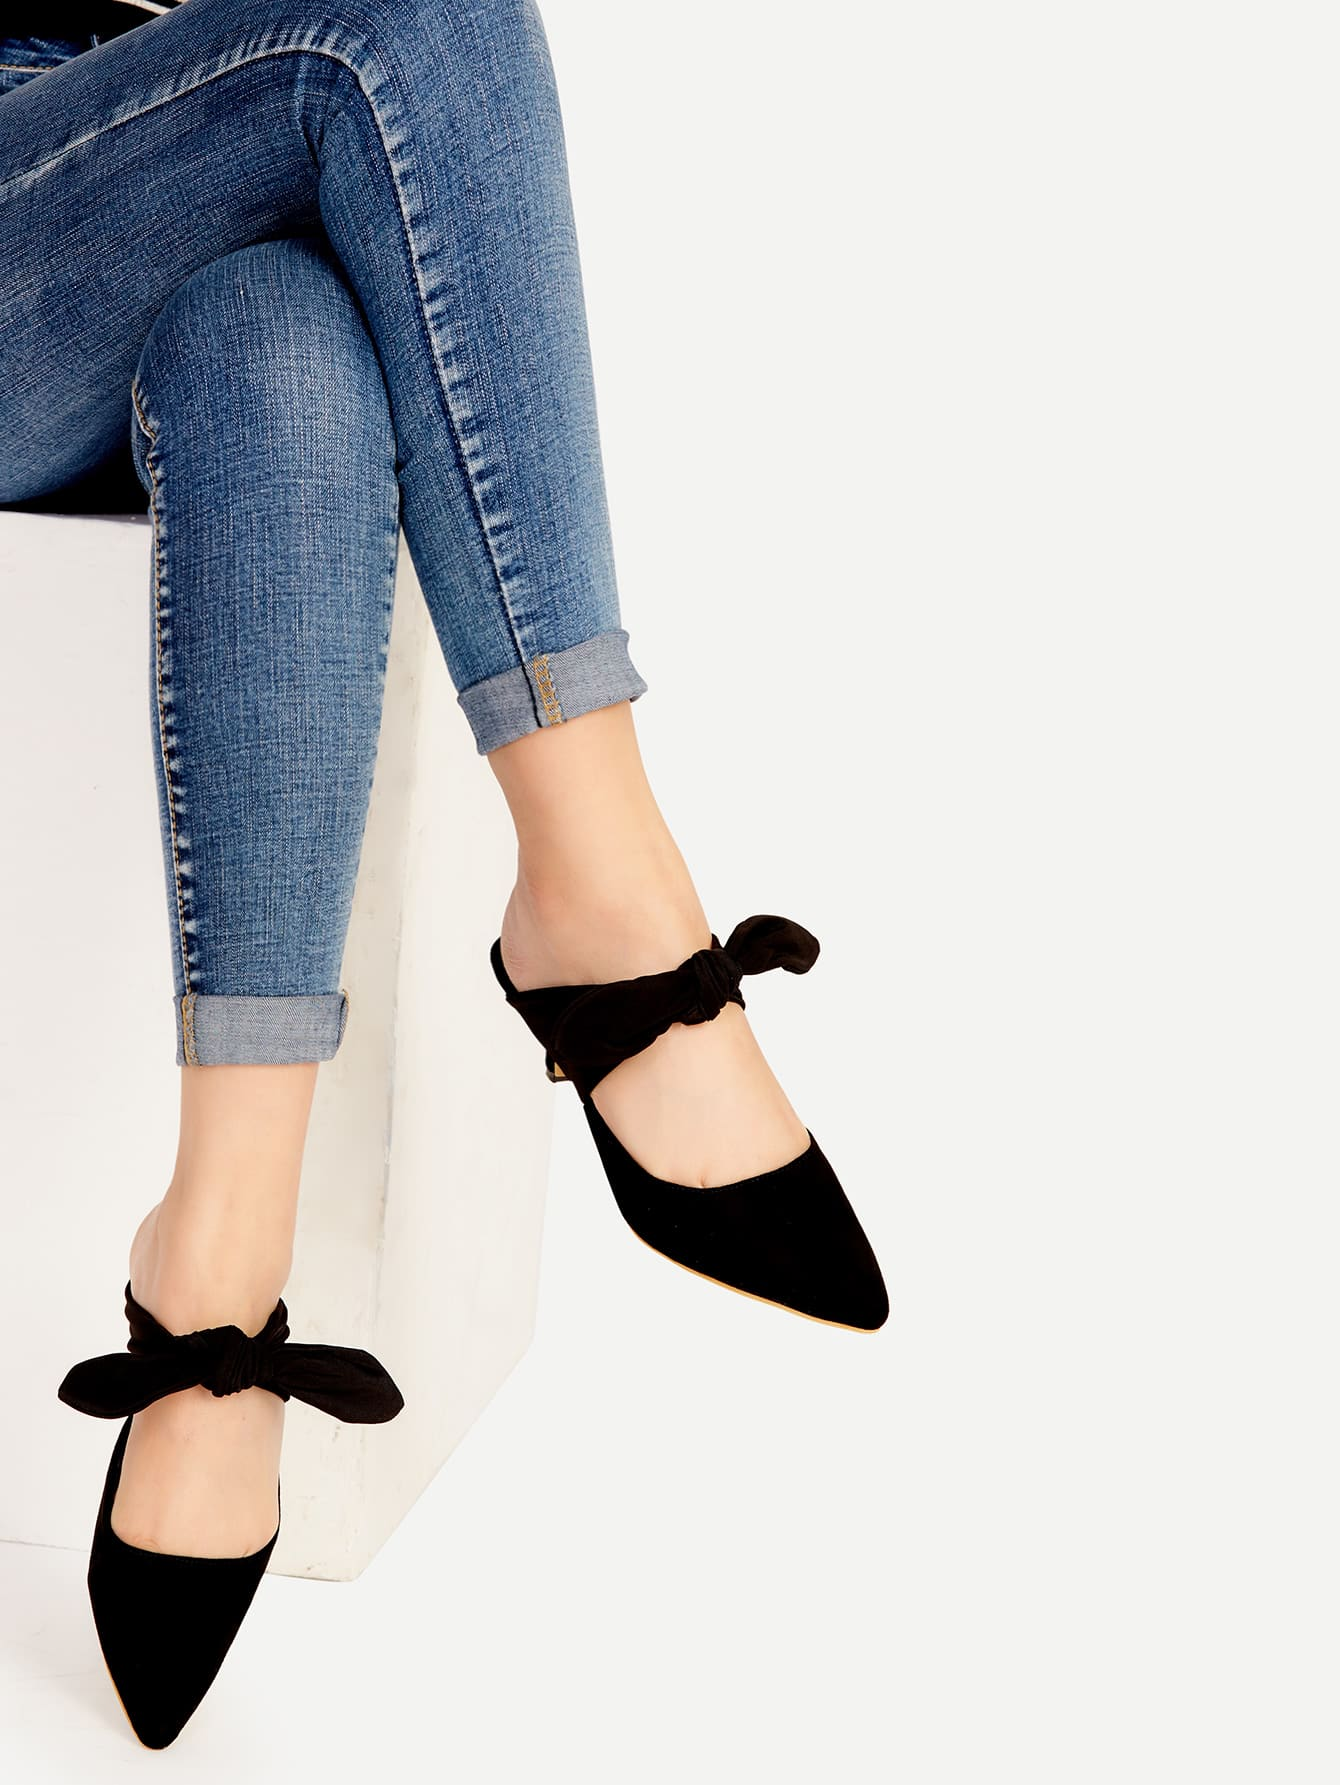 Black Point Toe Bow Tie Heeled Mules black choker with bow tie